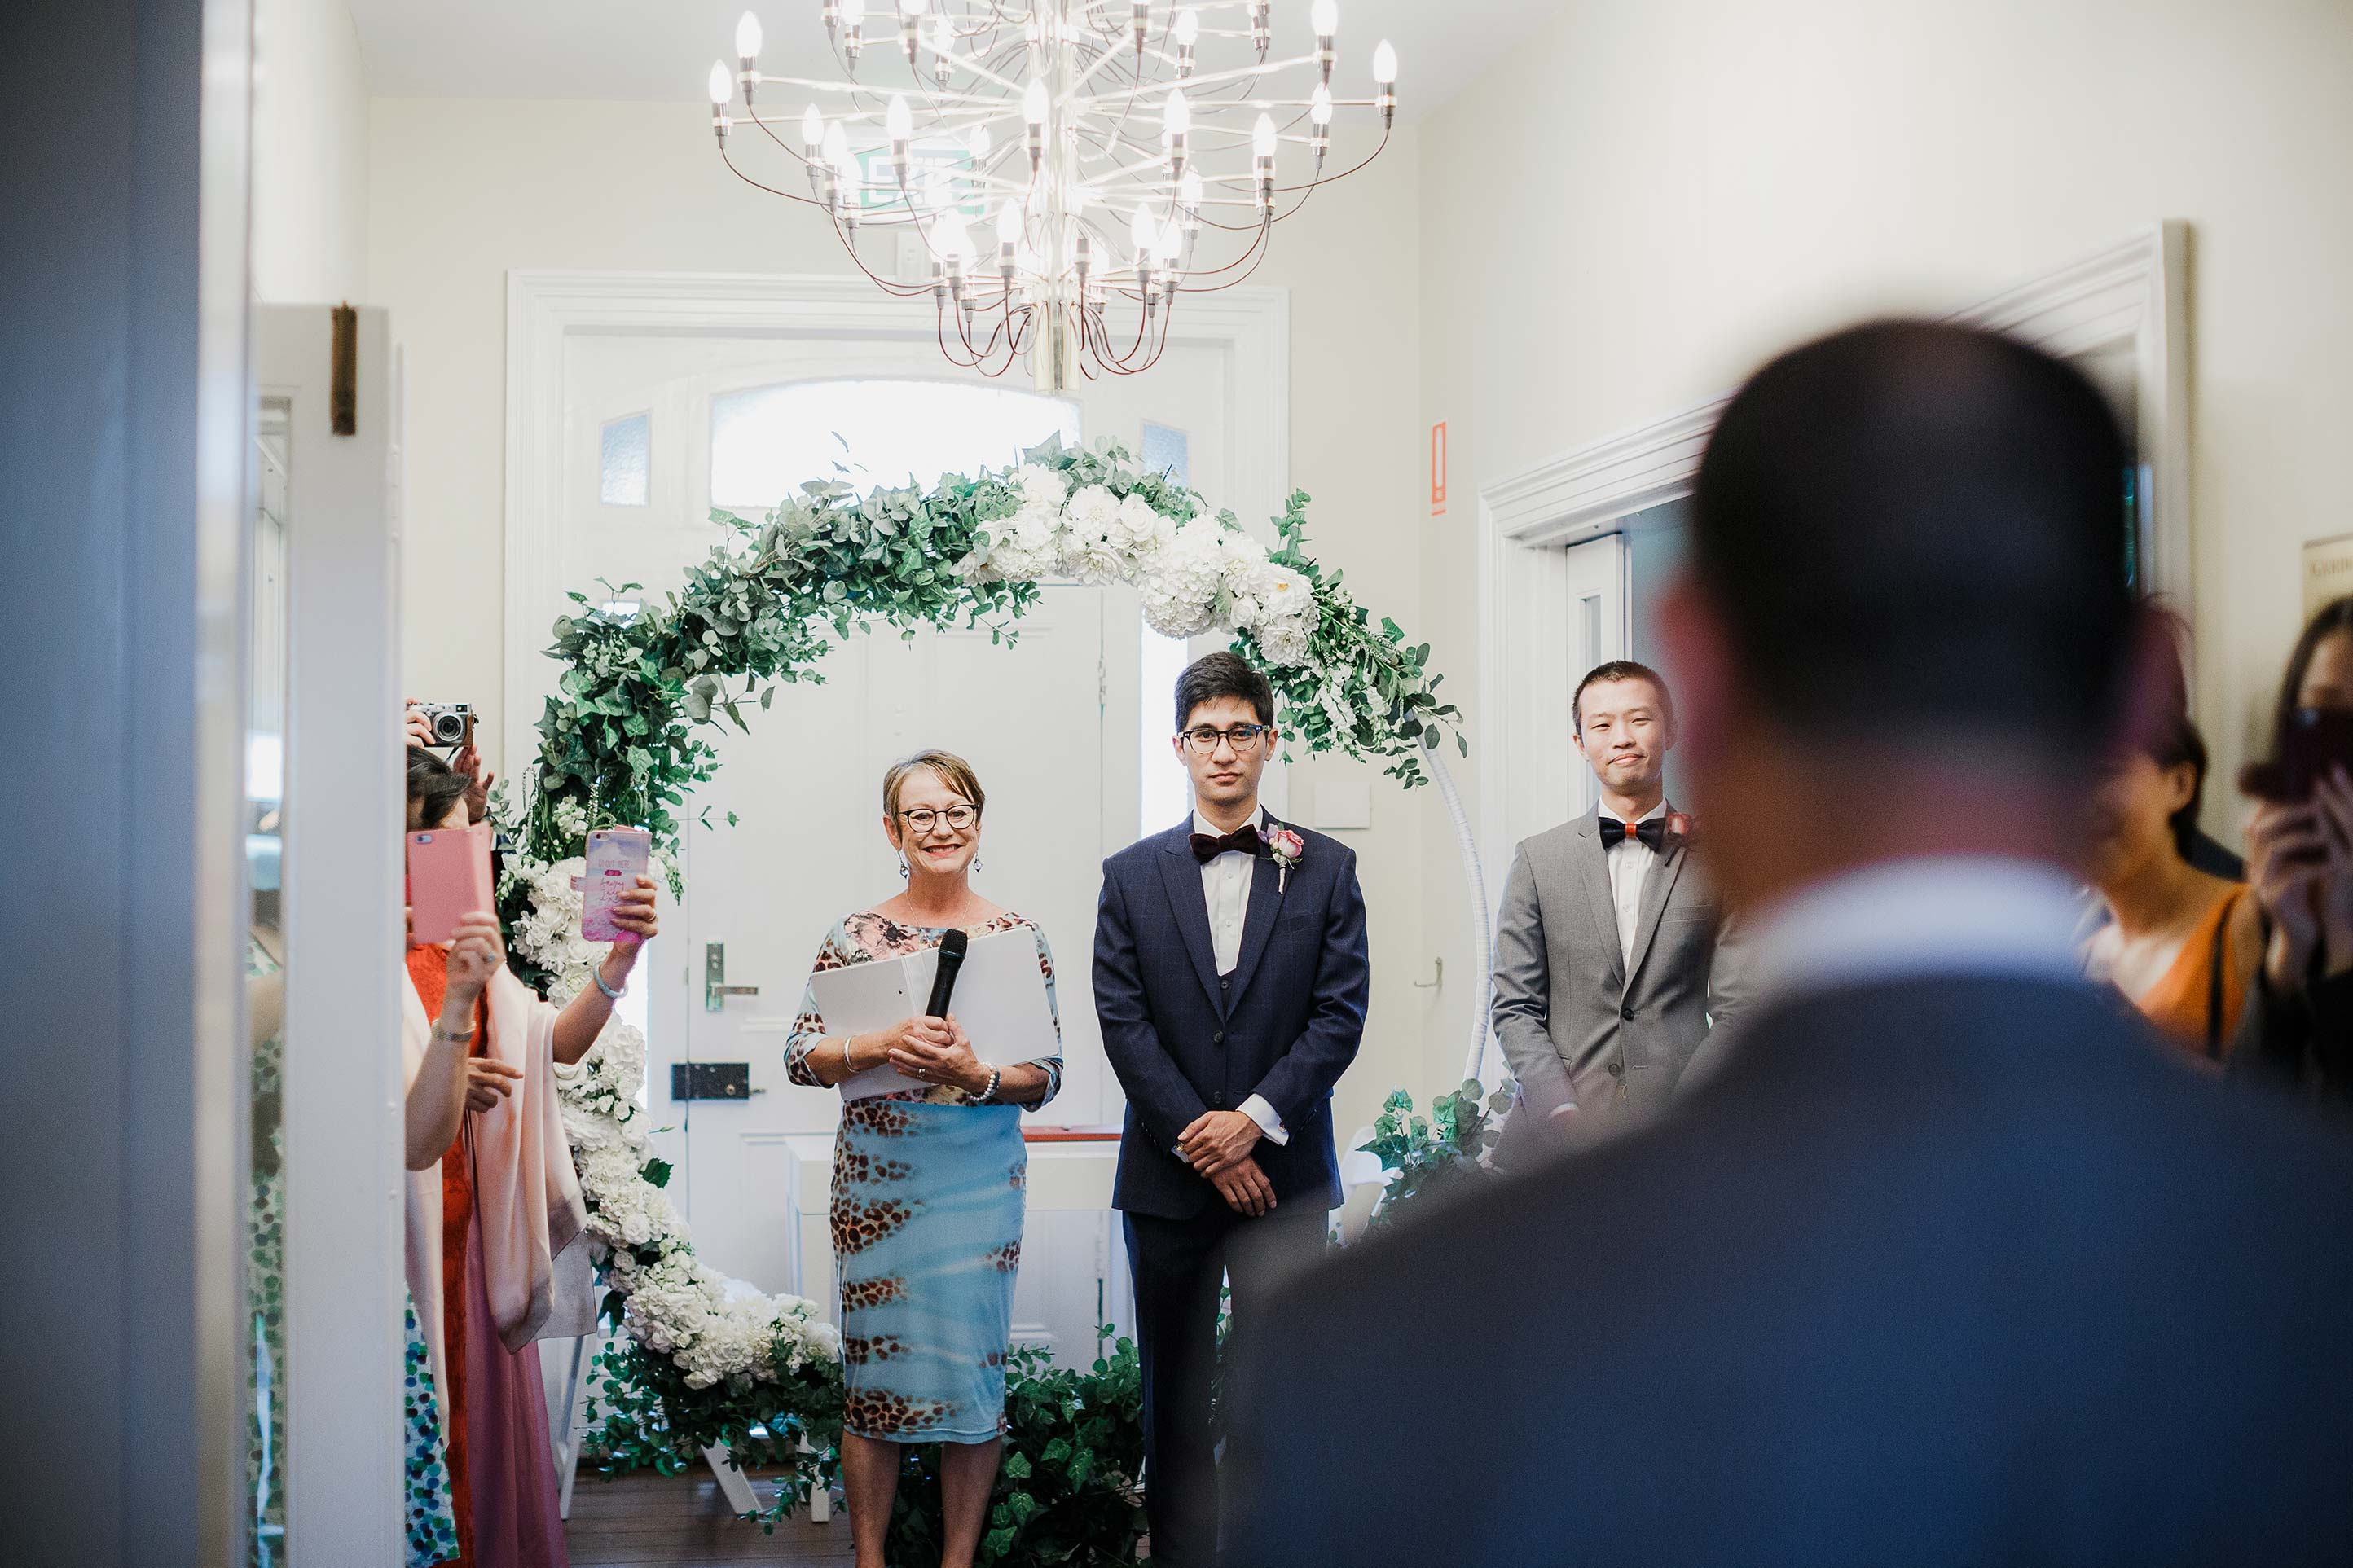 Melbourne-Botanical-Gardens-House-Ceremony-Wedding-Arrival-groom